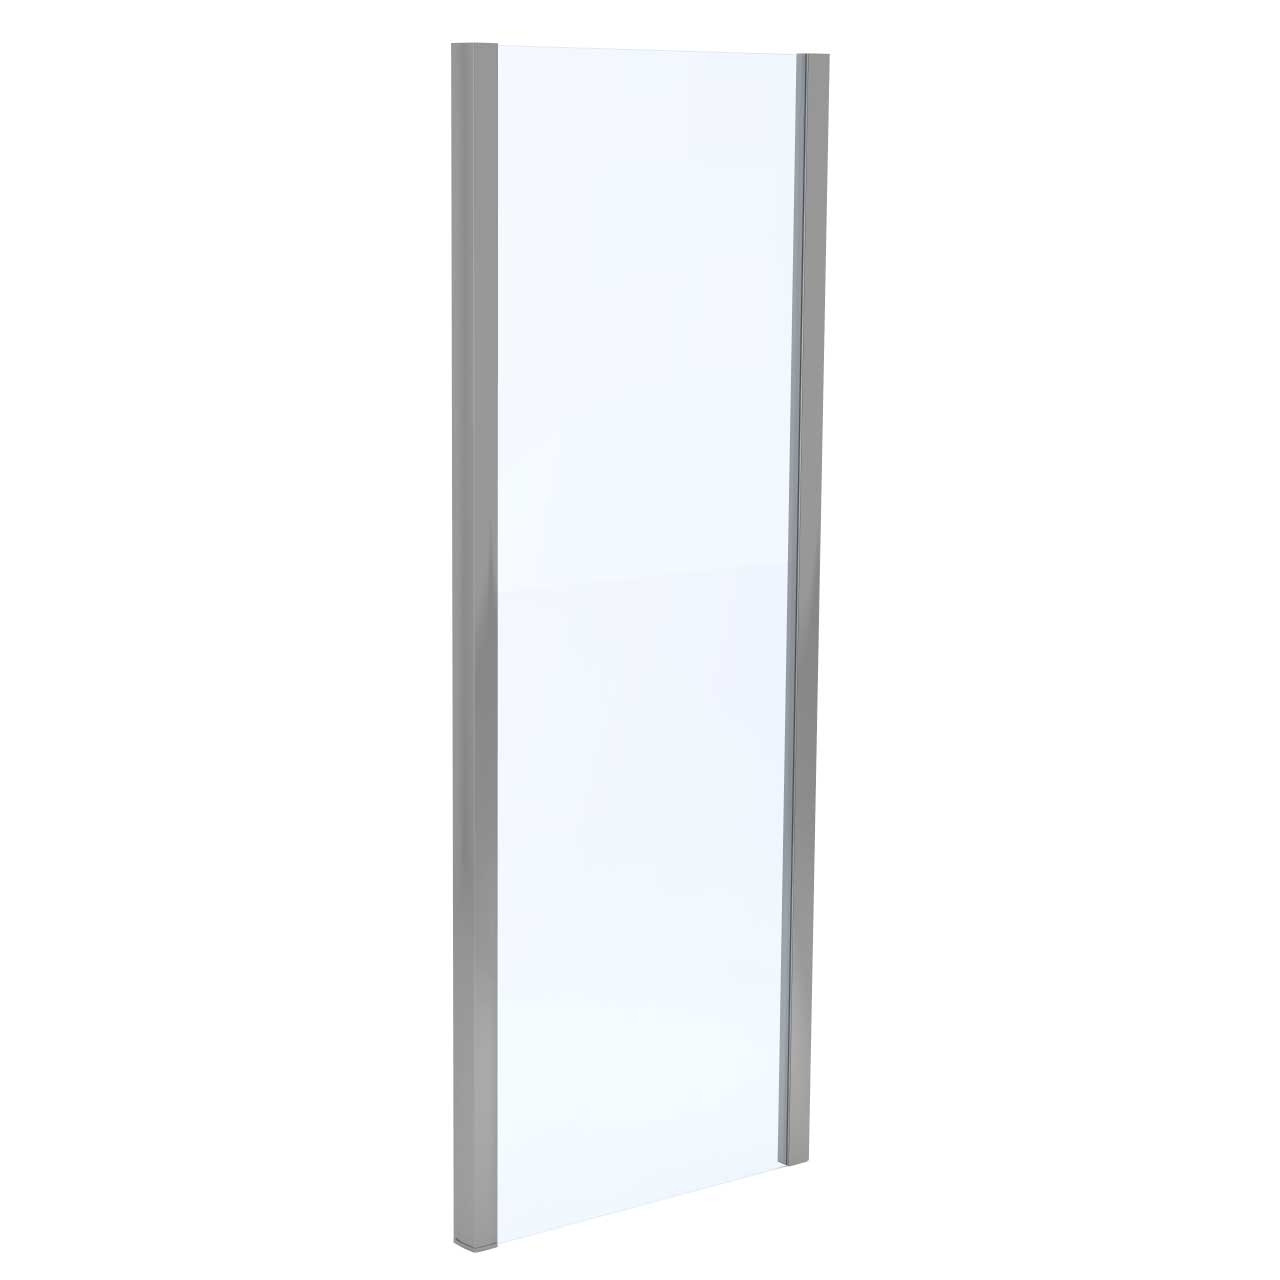 Series 6 900mm x 700mm Pivot Door Shower Enclosure